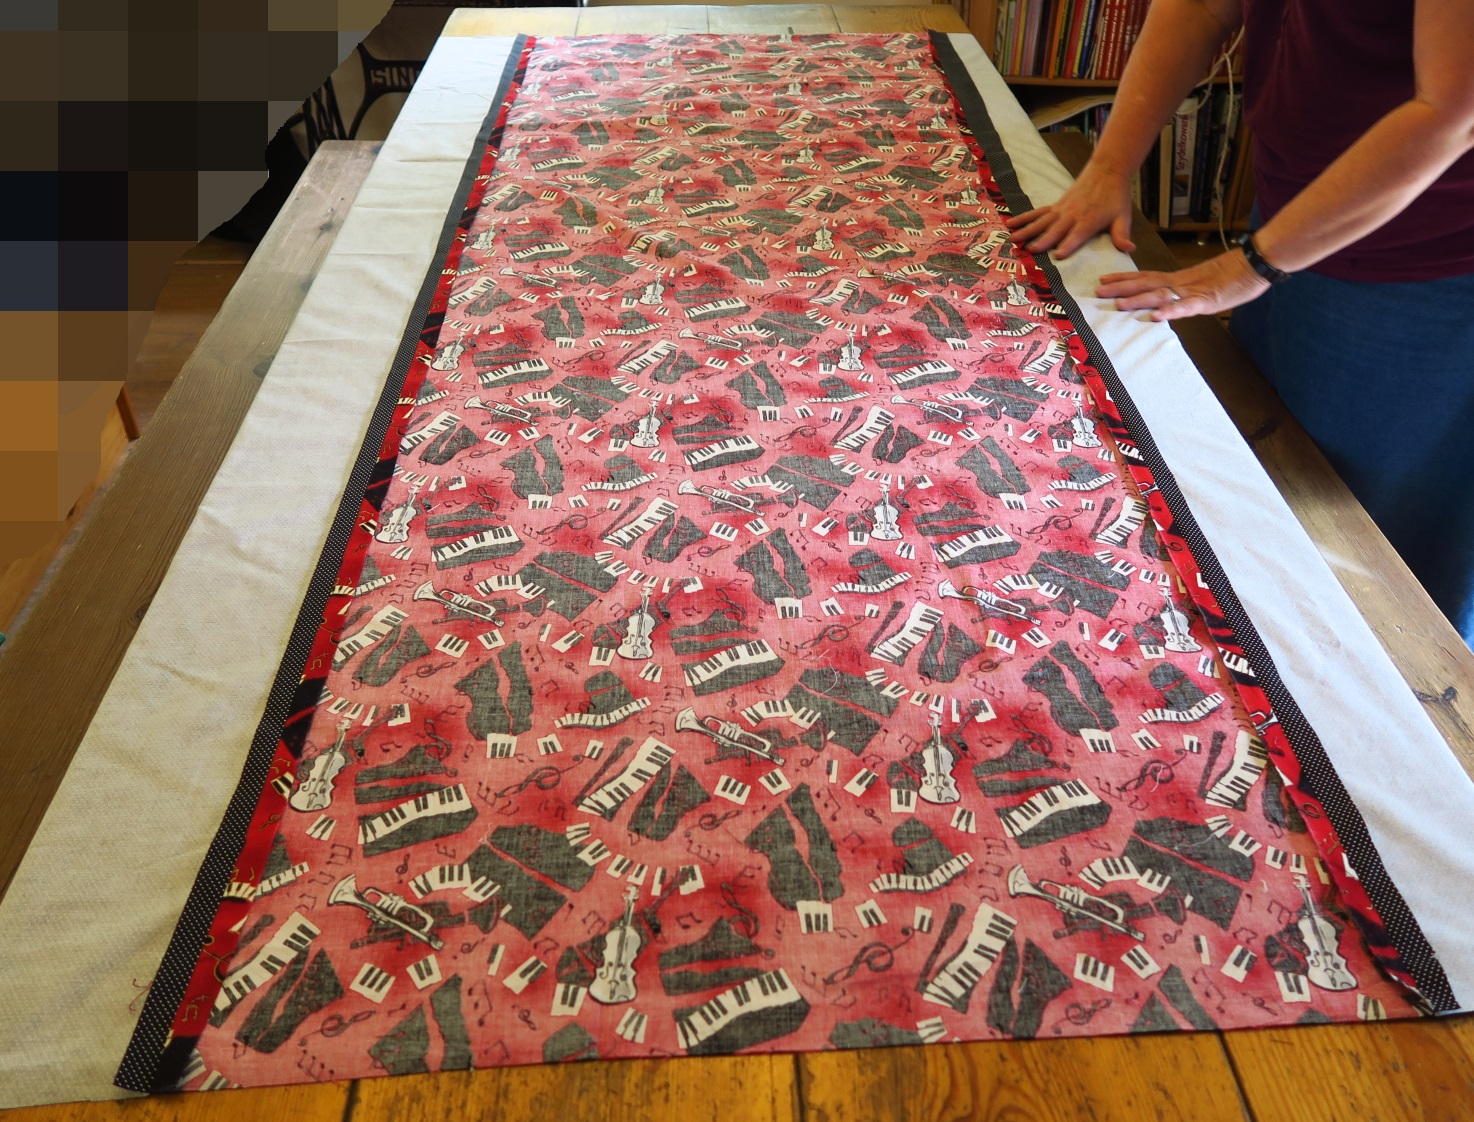 She pieced a piece of red music fabric to two polka dot pieces (black) in order to make a backing the right size. She wanted to center the backing with the top, so we matched centers as we laid it out. I guess we'll check it at the end and see how accurate we got it (after washing).